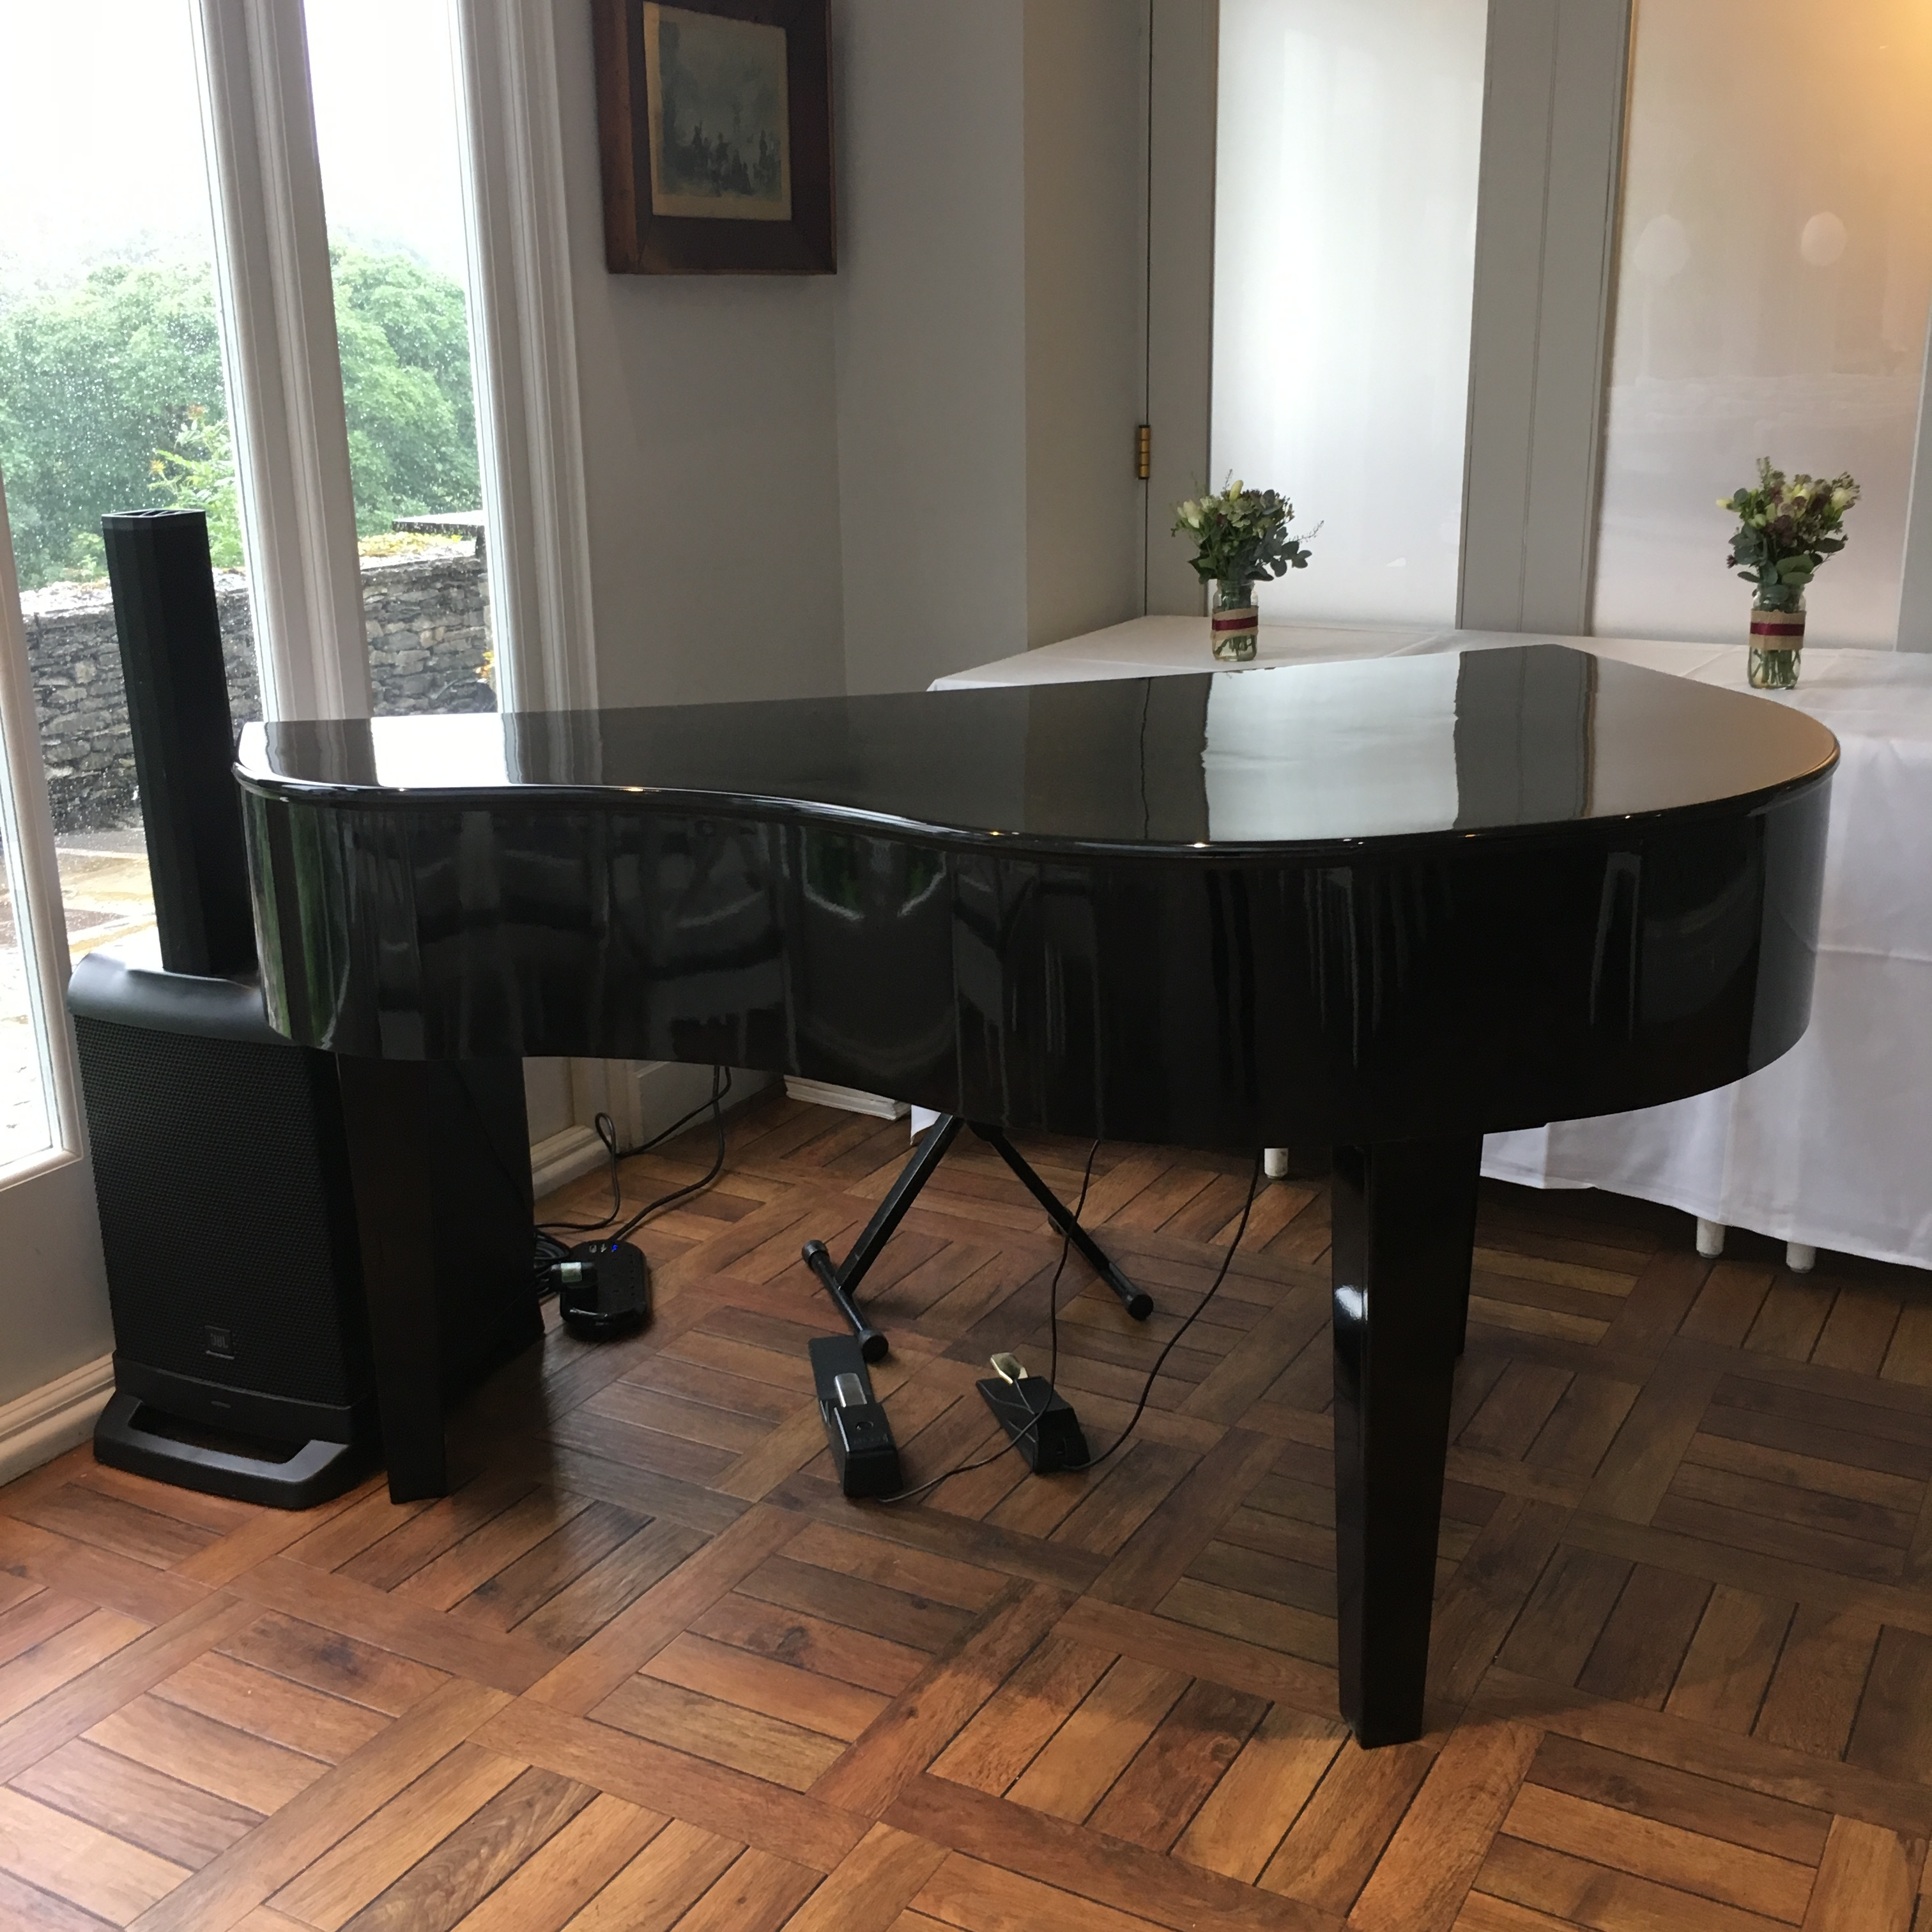 Craig Smith Wedding Pianist for Broadoaks Country House